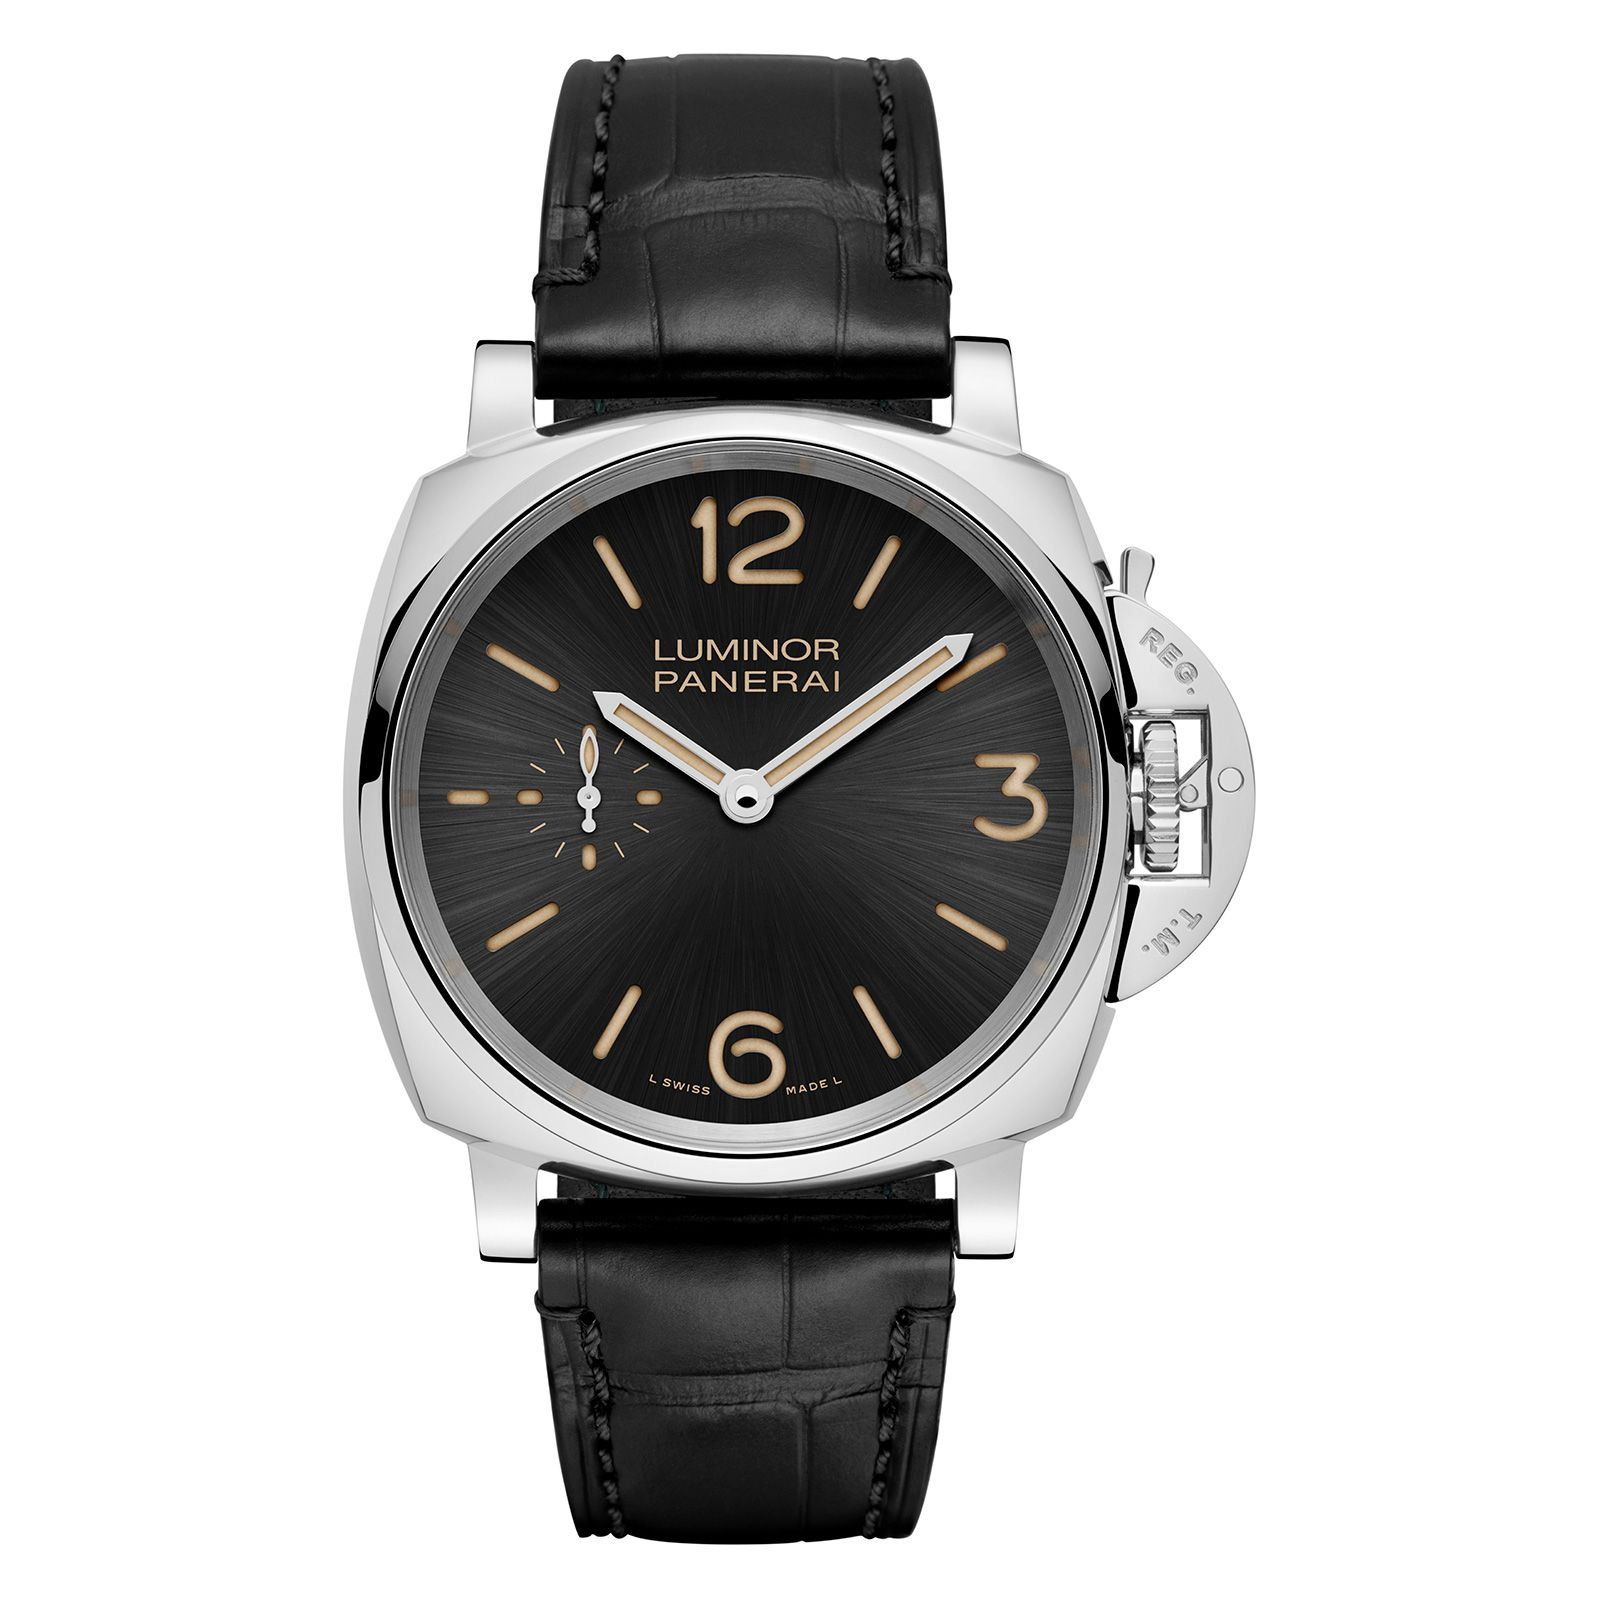 panerai-luminor-due.jpg